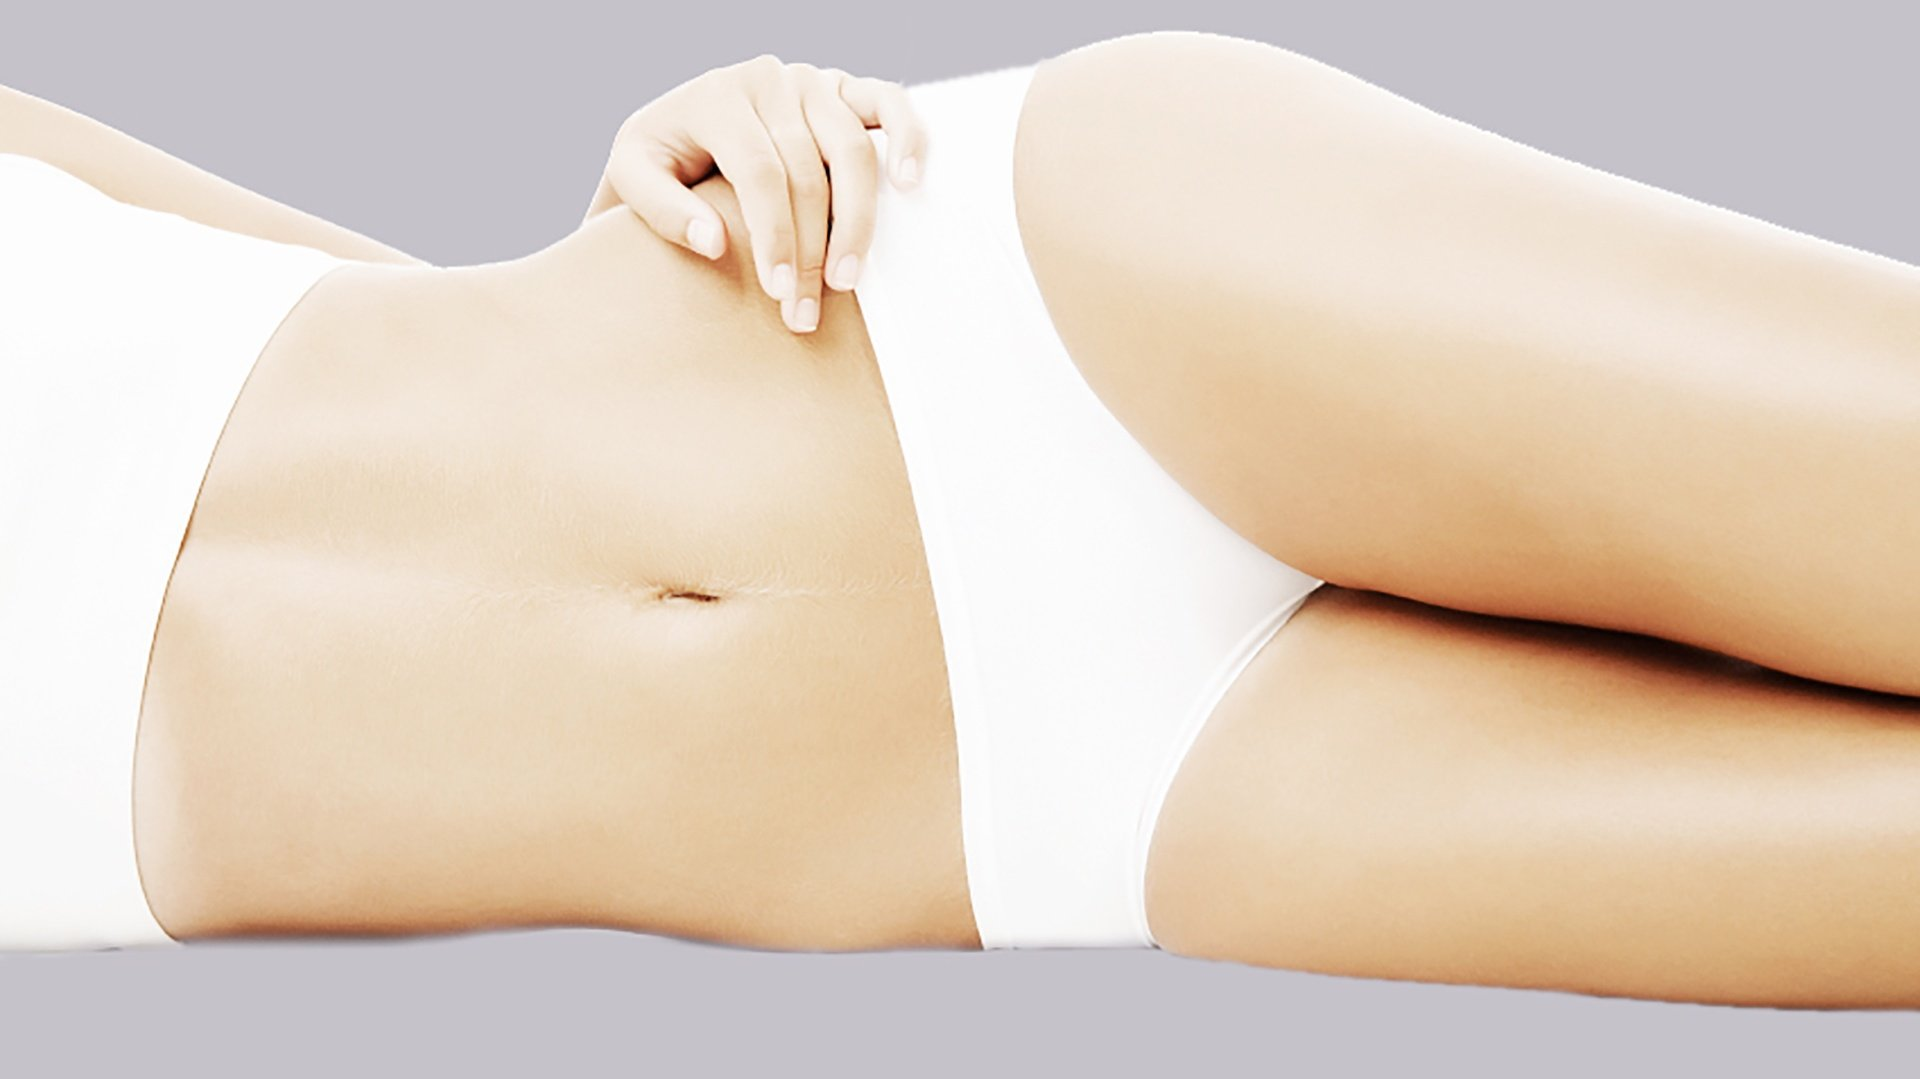 guide-five-important-questions-to-ask-before-an-abdominoplasty.jpg